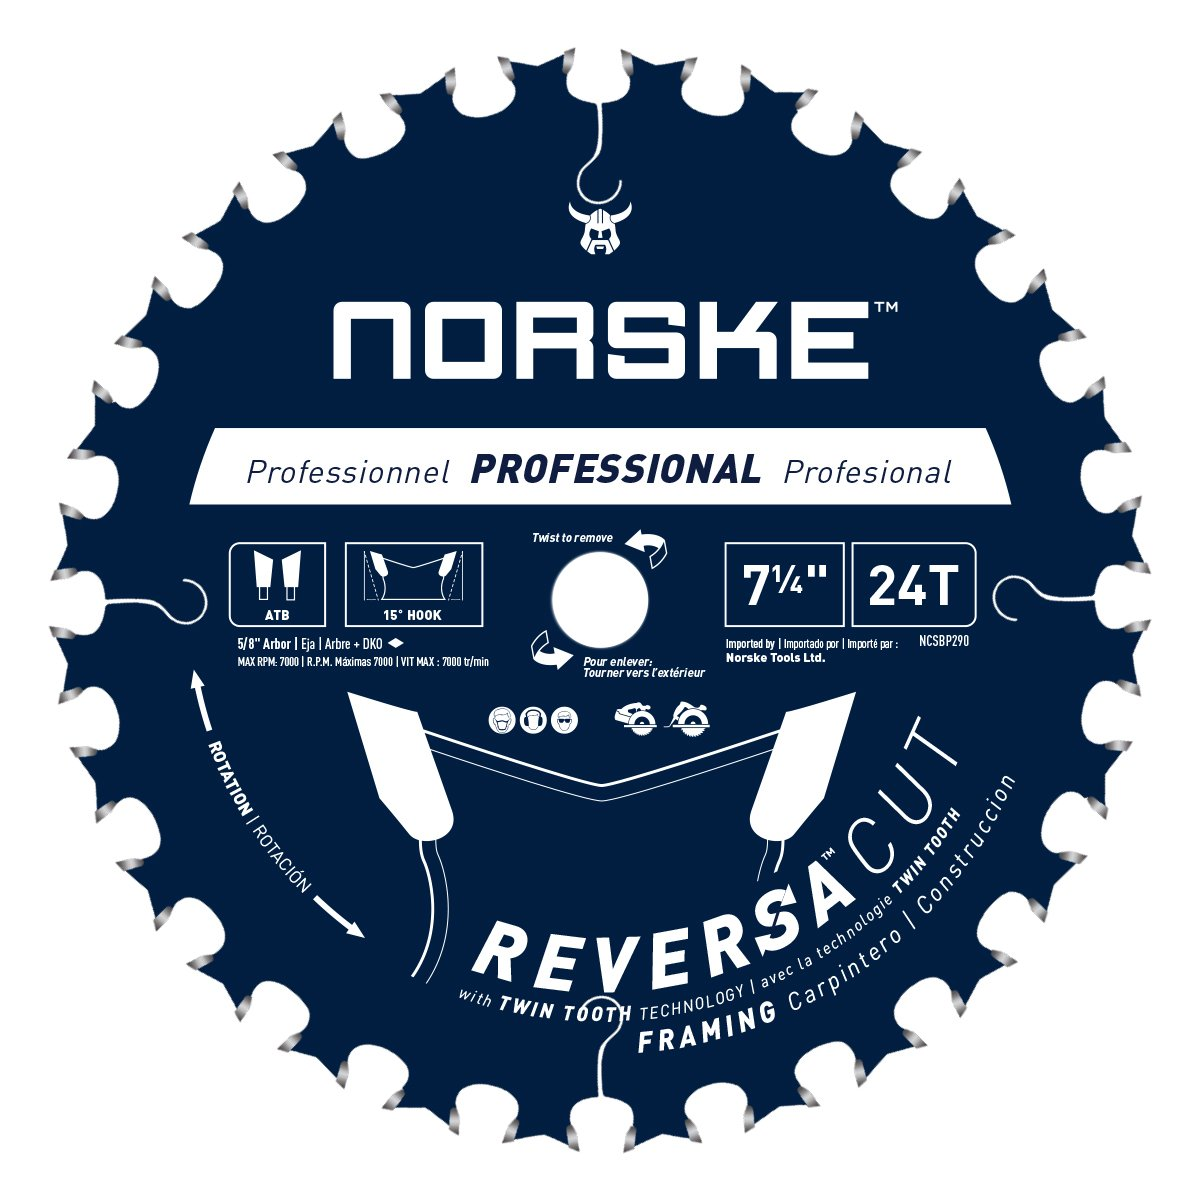 Norske Tools NCSBP290 7-1/4 inch x 24 Teeth Reversa Cut Thin Kerf Framing Saw Blade Japanese Steel 5/8 inch Bore with Diamond Knockout One Blade with Double Life Time